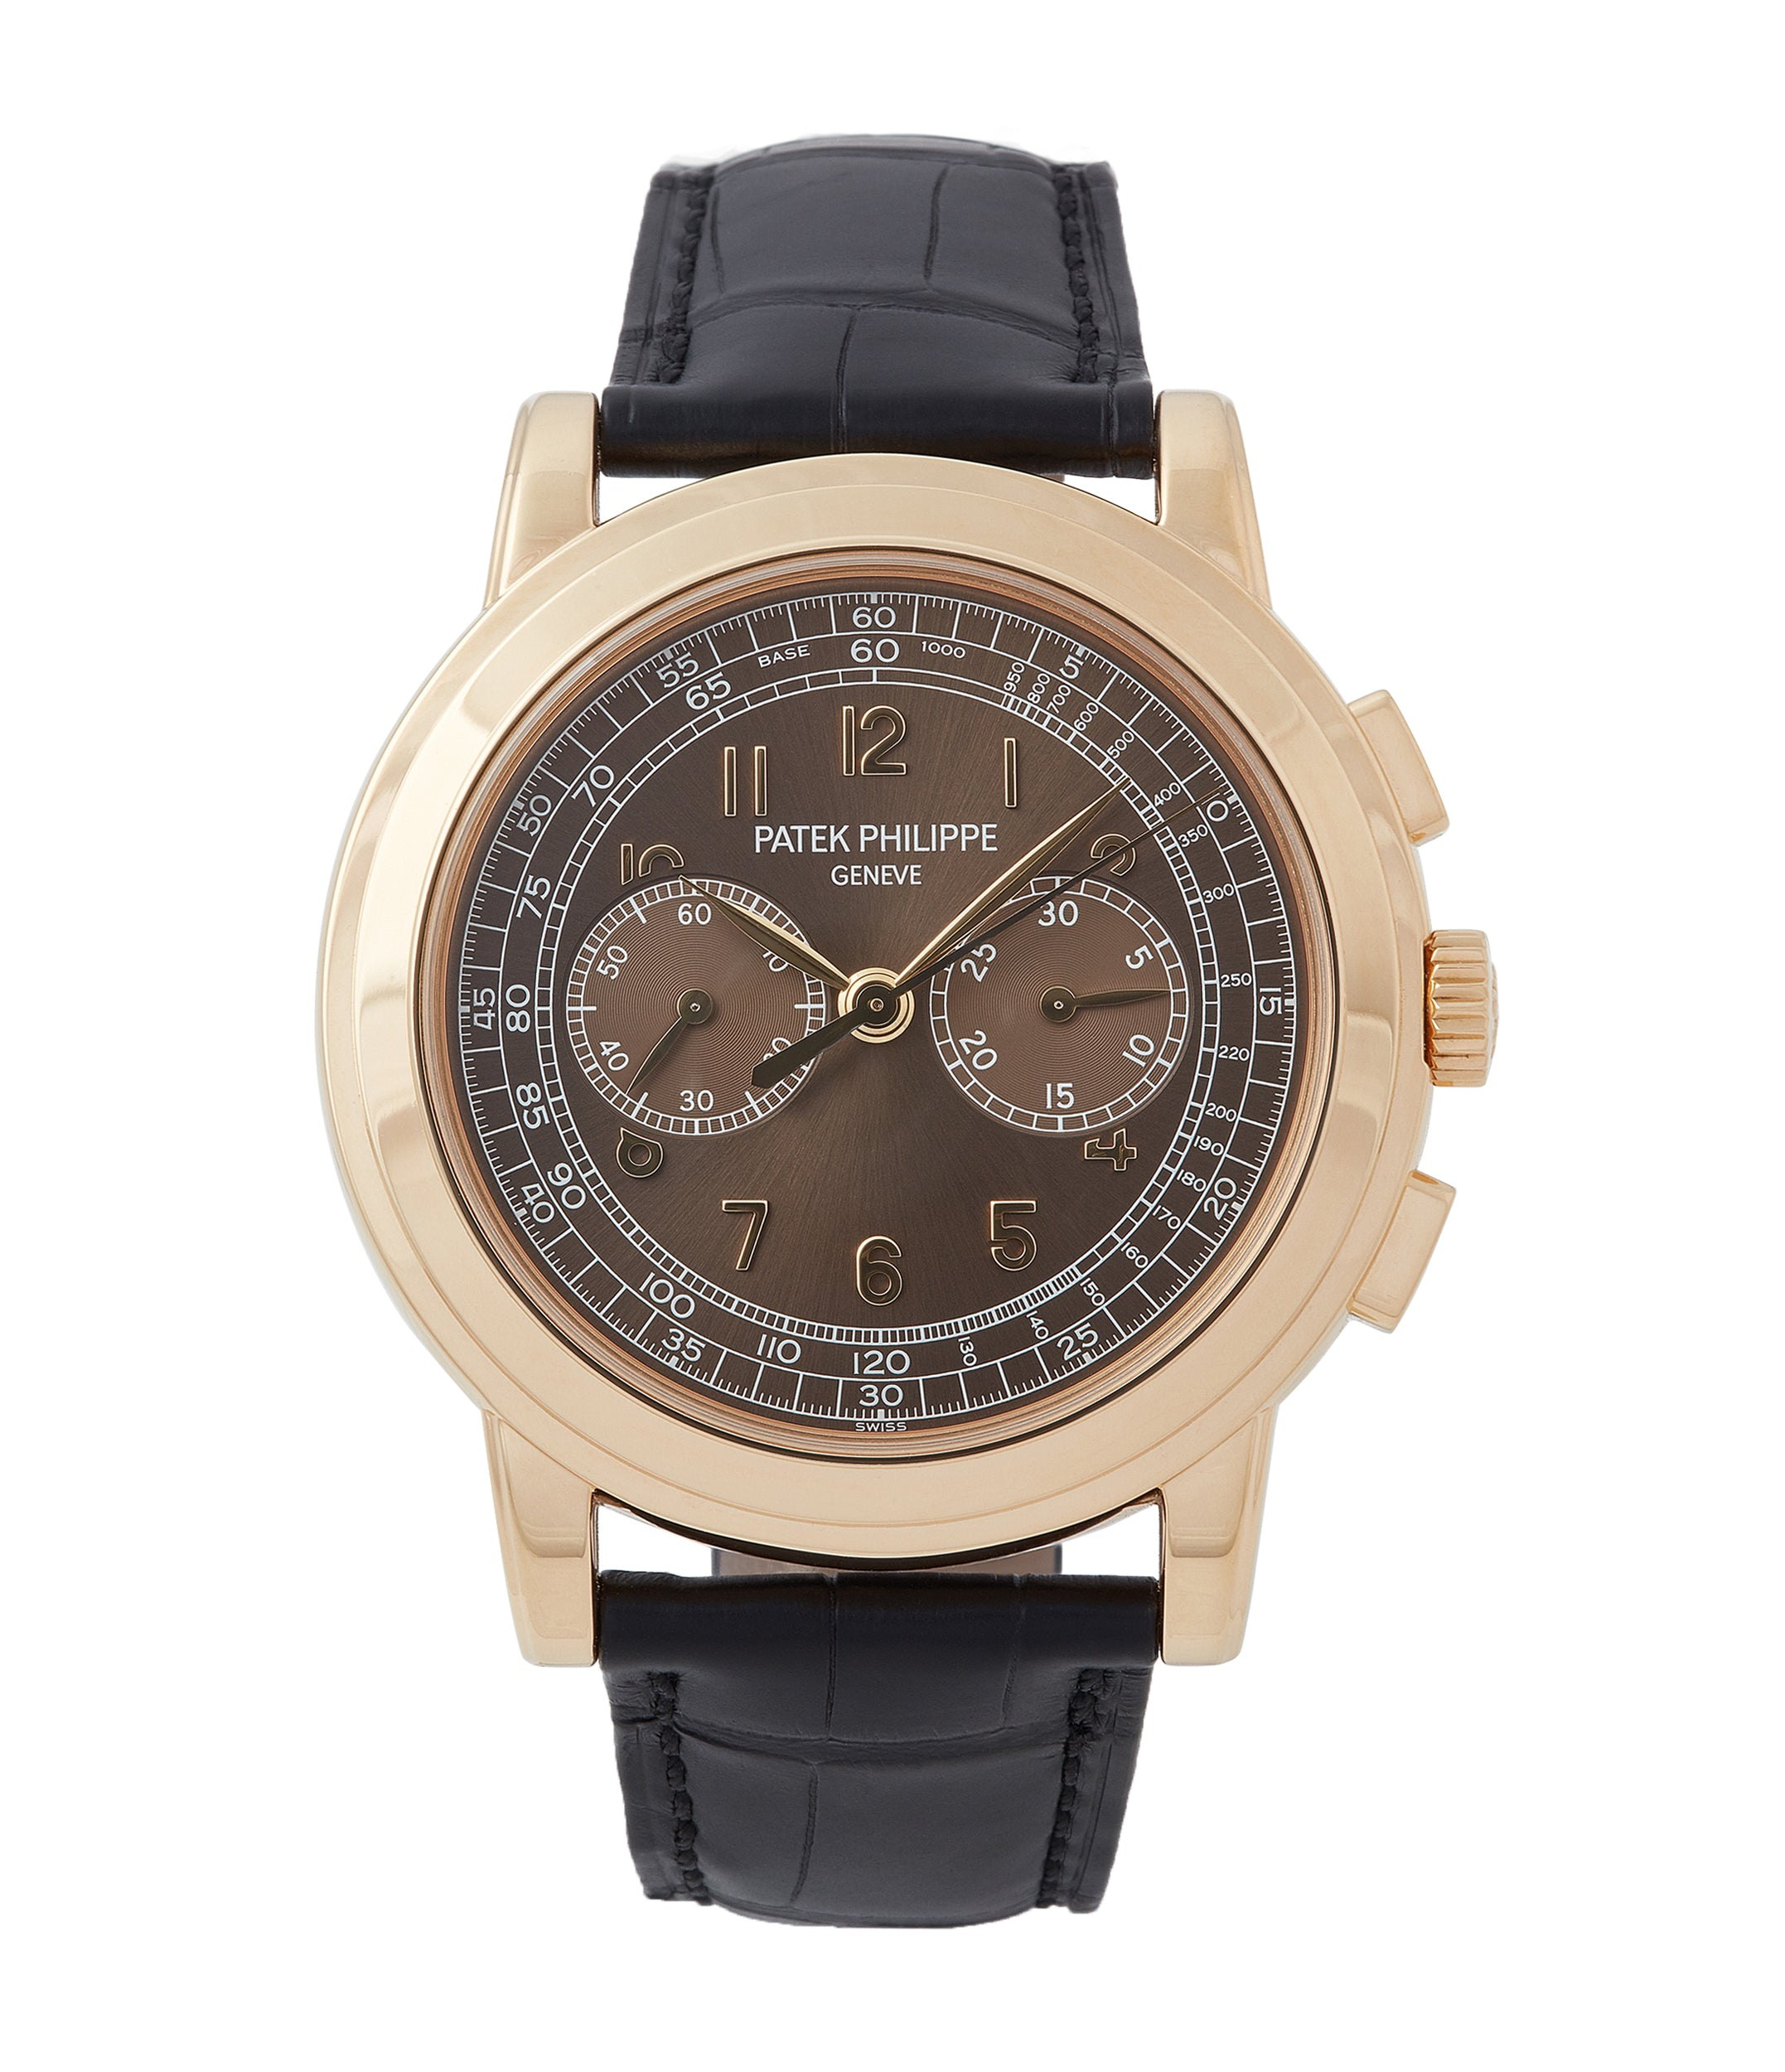 buy Patek Philippe 5070J-012 Saatchi Edition Chronograph yellow gold watch for sale online at A Collected Man London UK specialist of rare watches